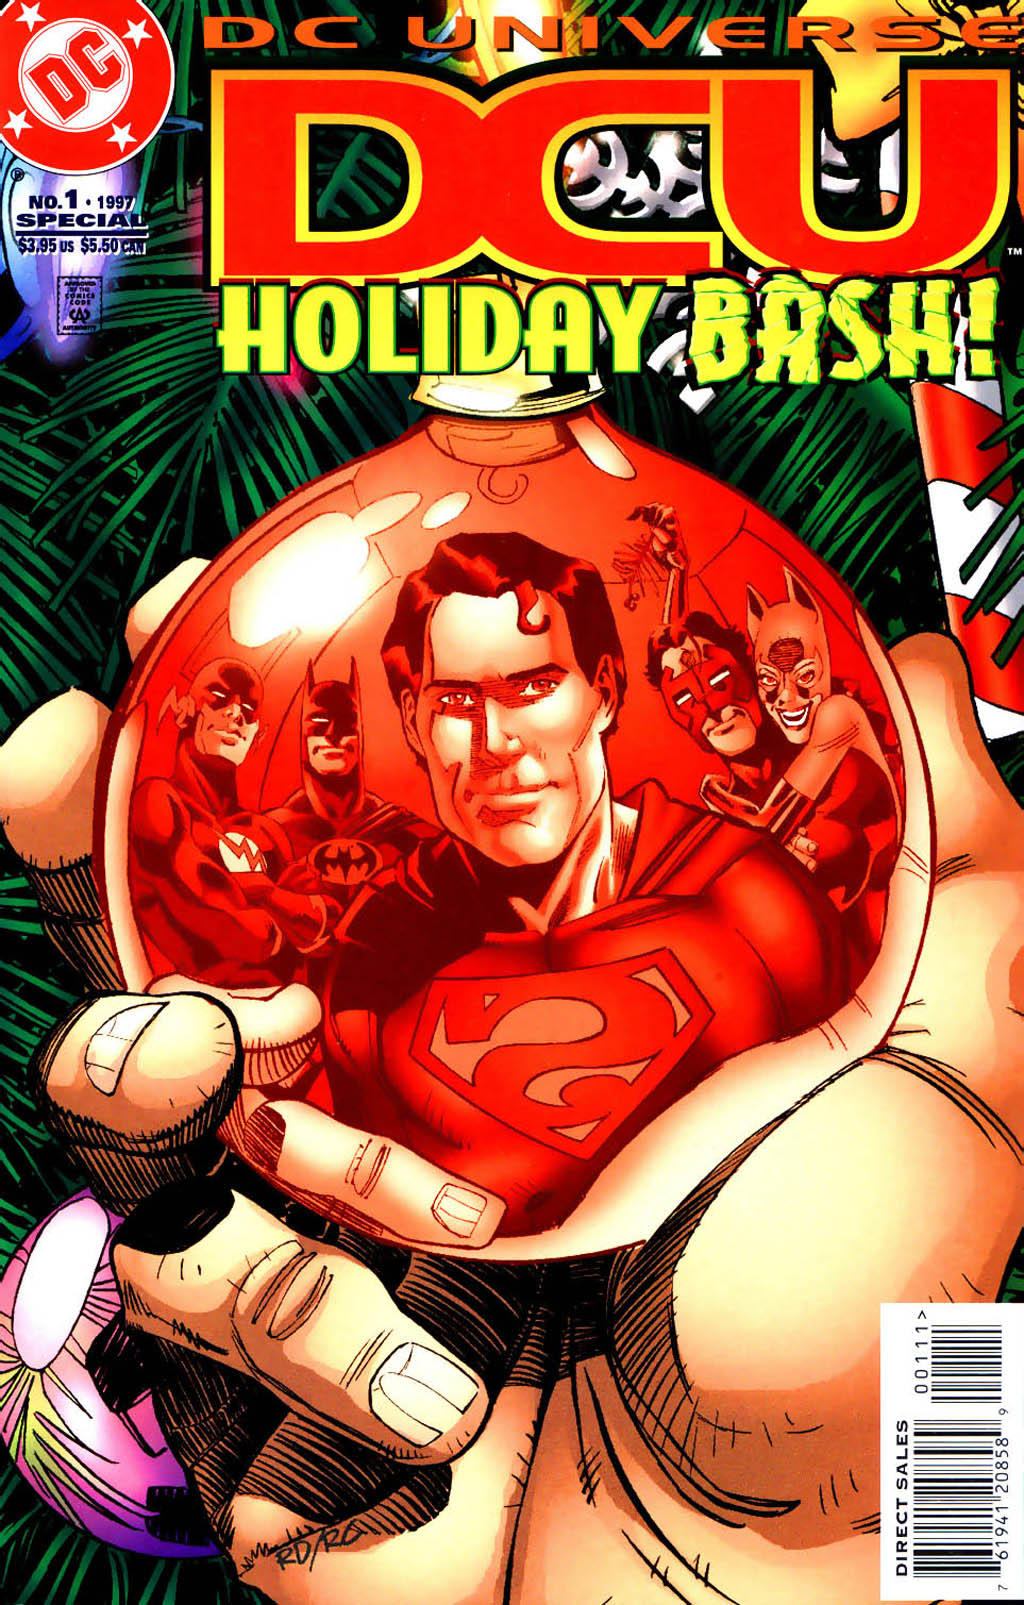 DC Universe Holiday Bash 1 Page 1